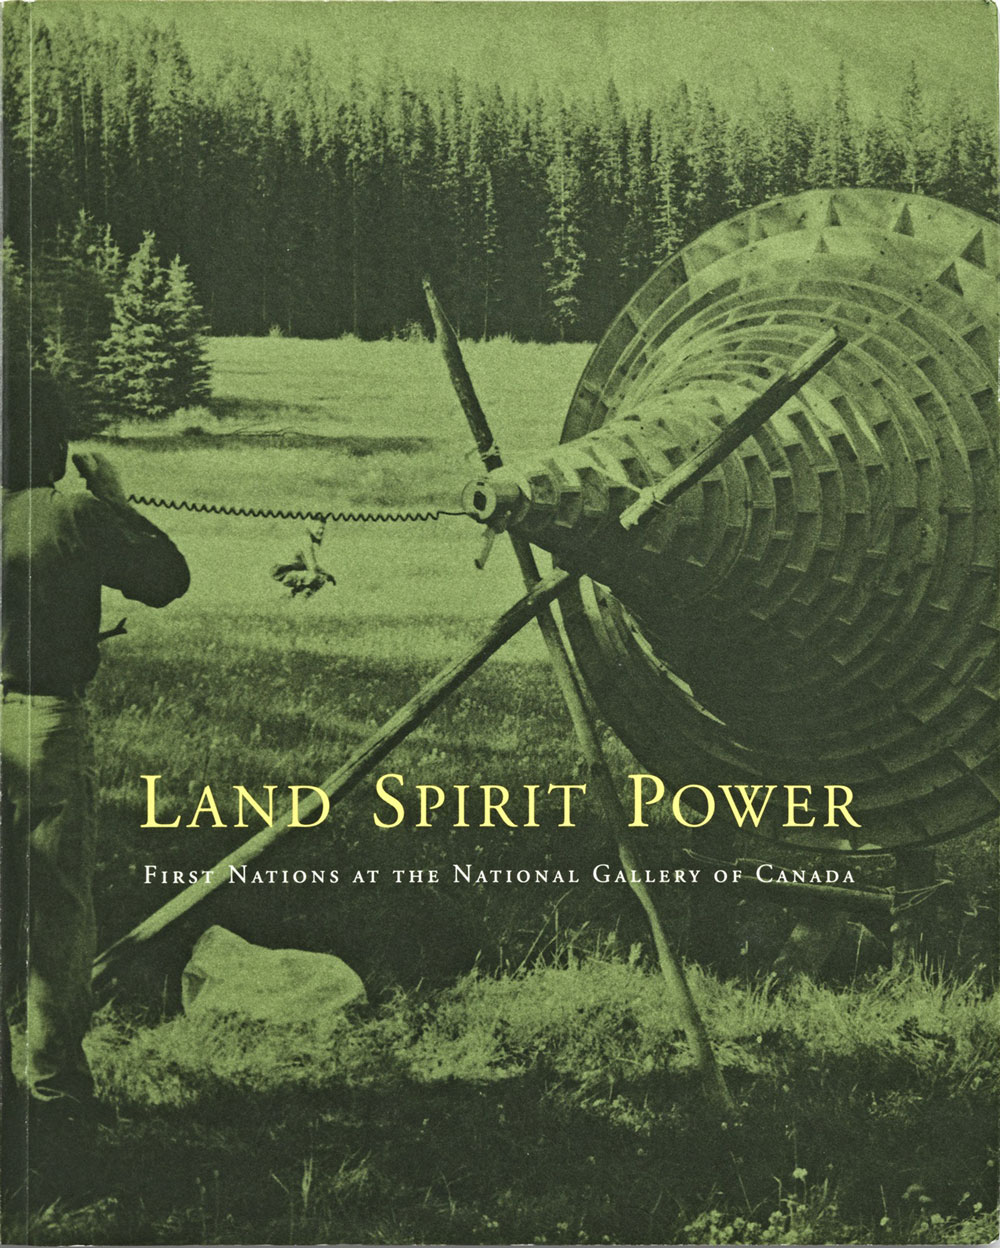 Land, Spirit, Power catalogue